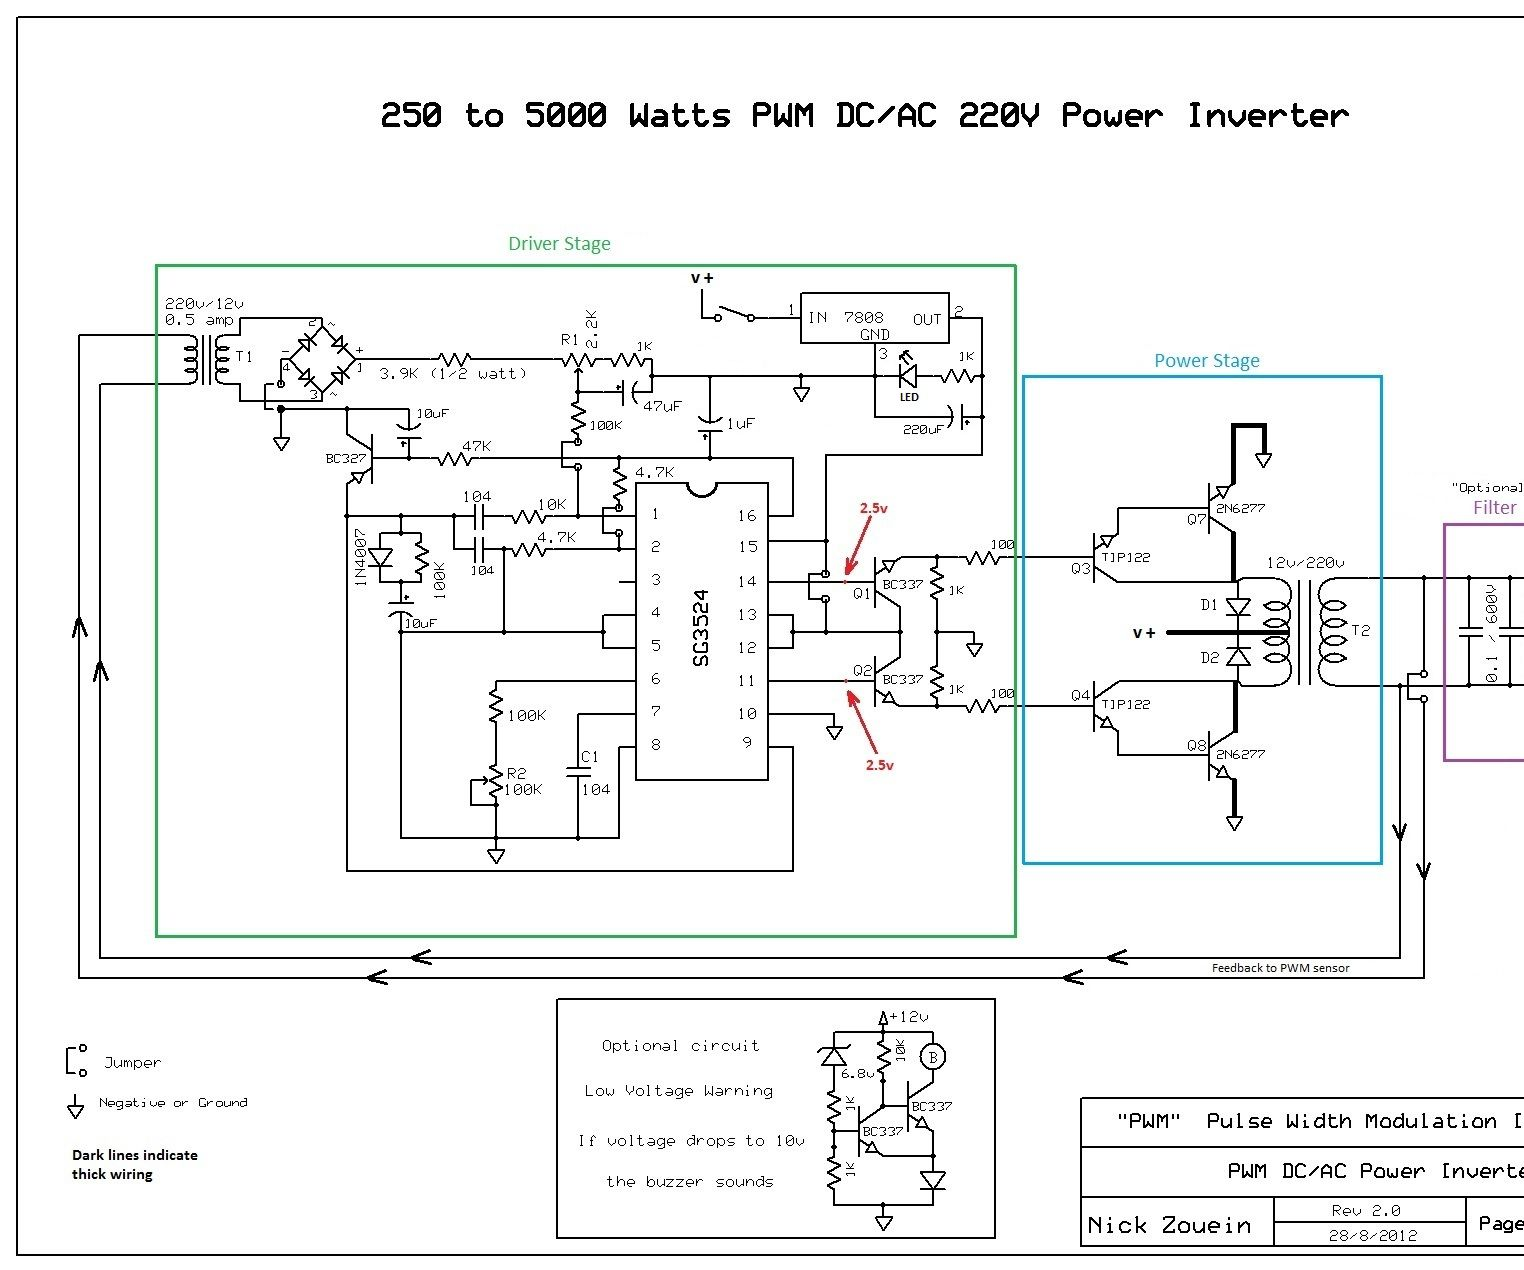 medium resolution of 250 to 5000 watts pwm dc ac 220v power inverter dc wiring schematic